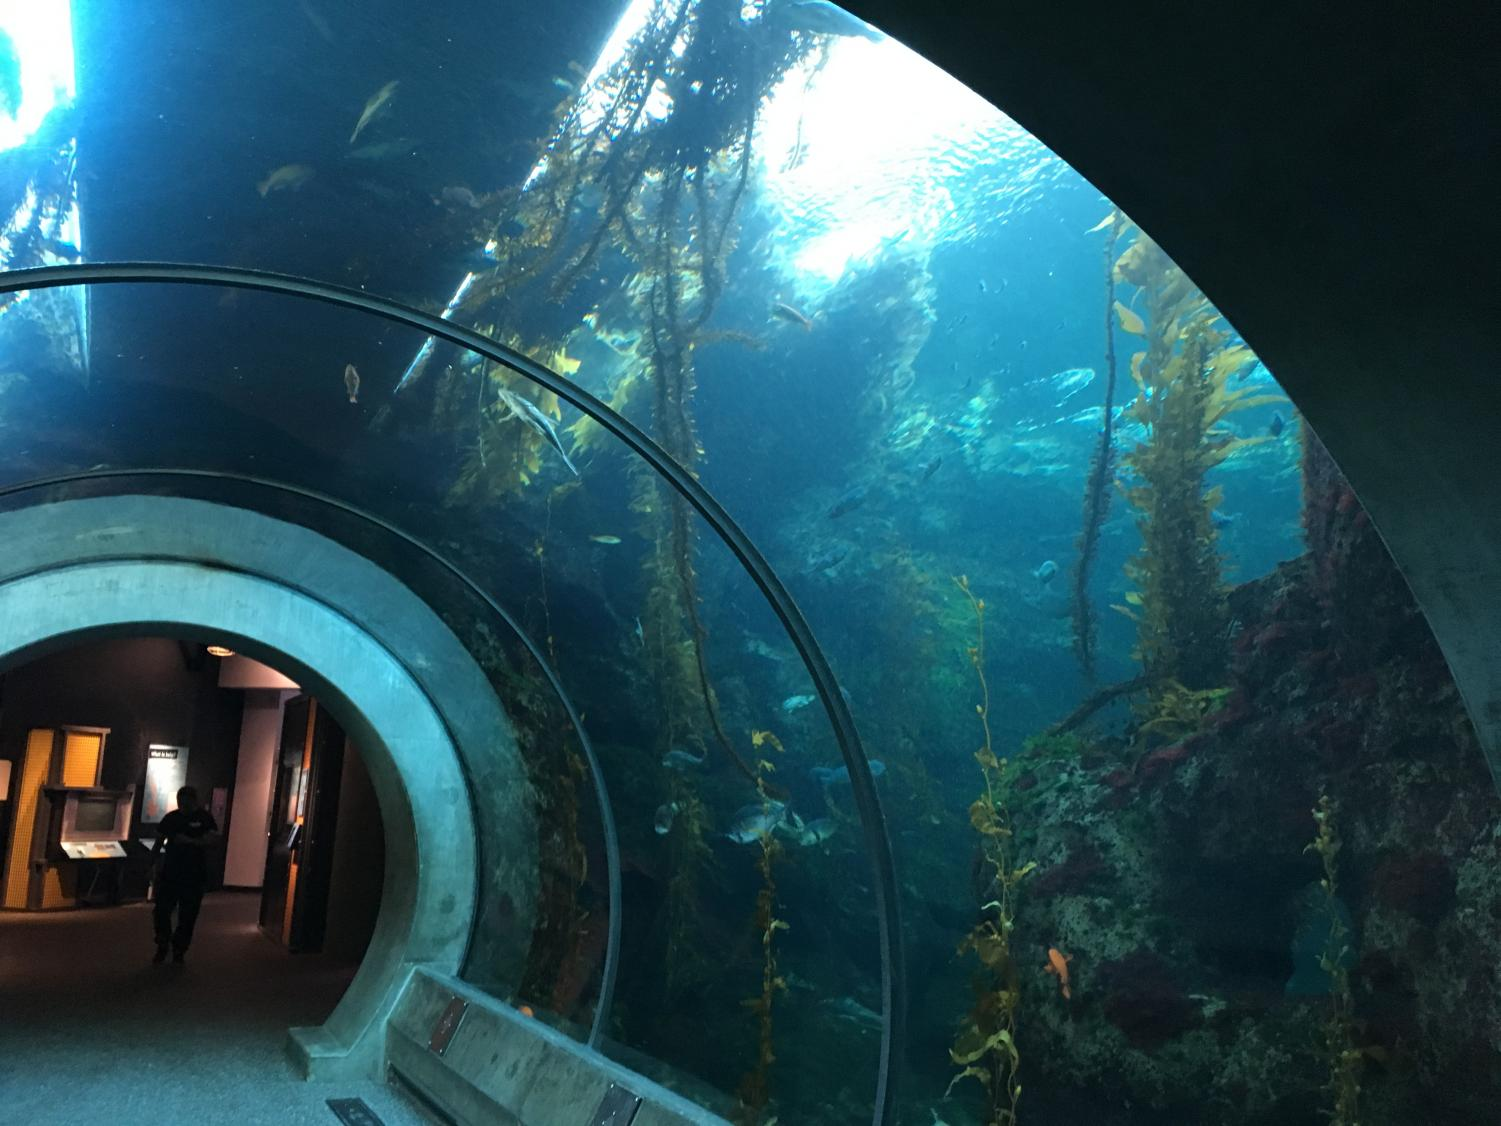 The Science Center kelp forest tank's tunnel.